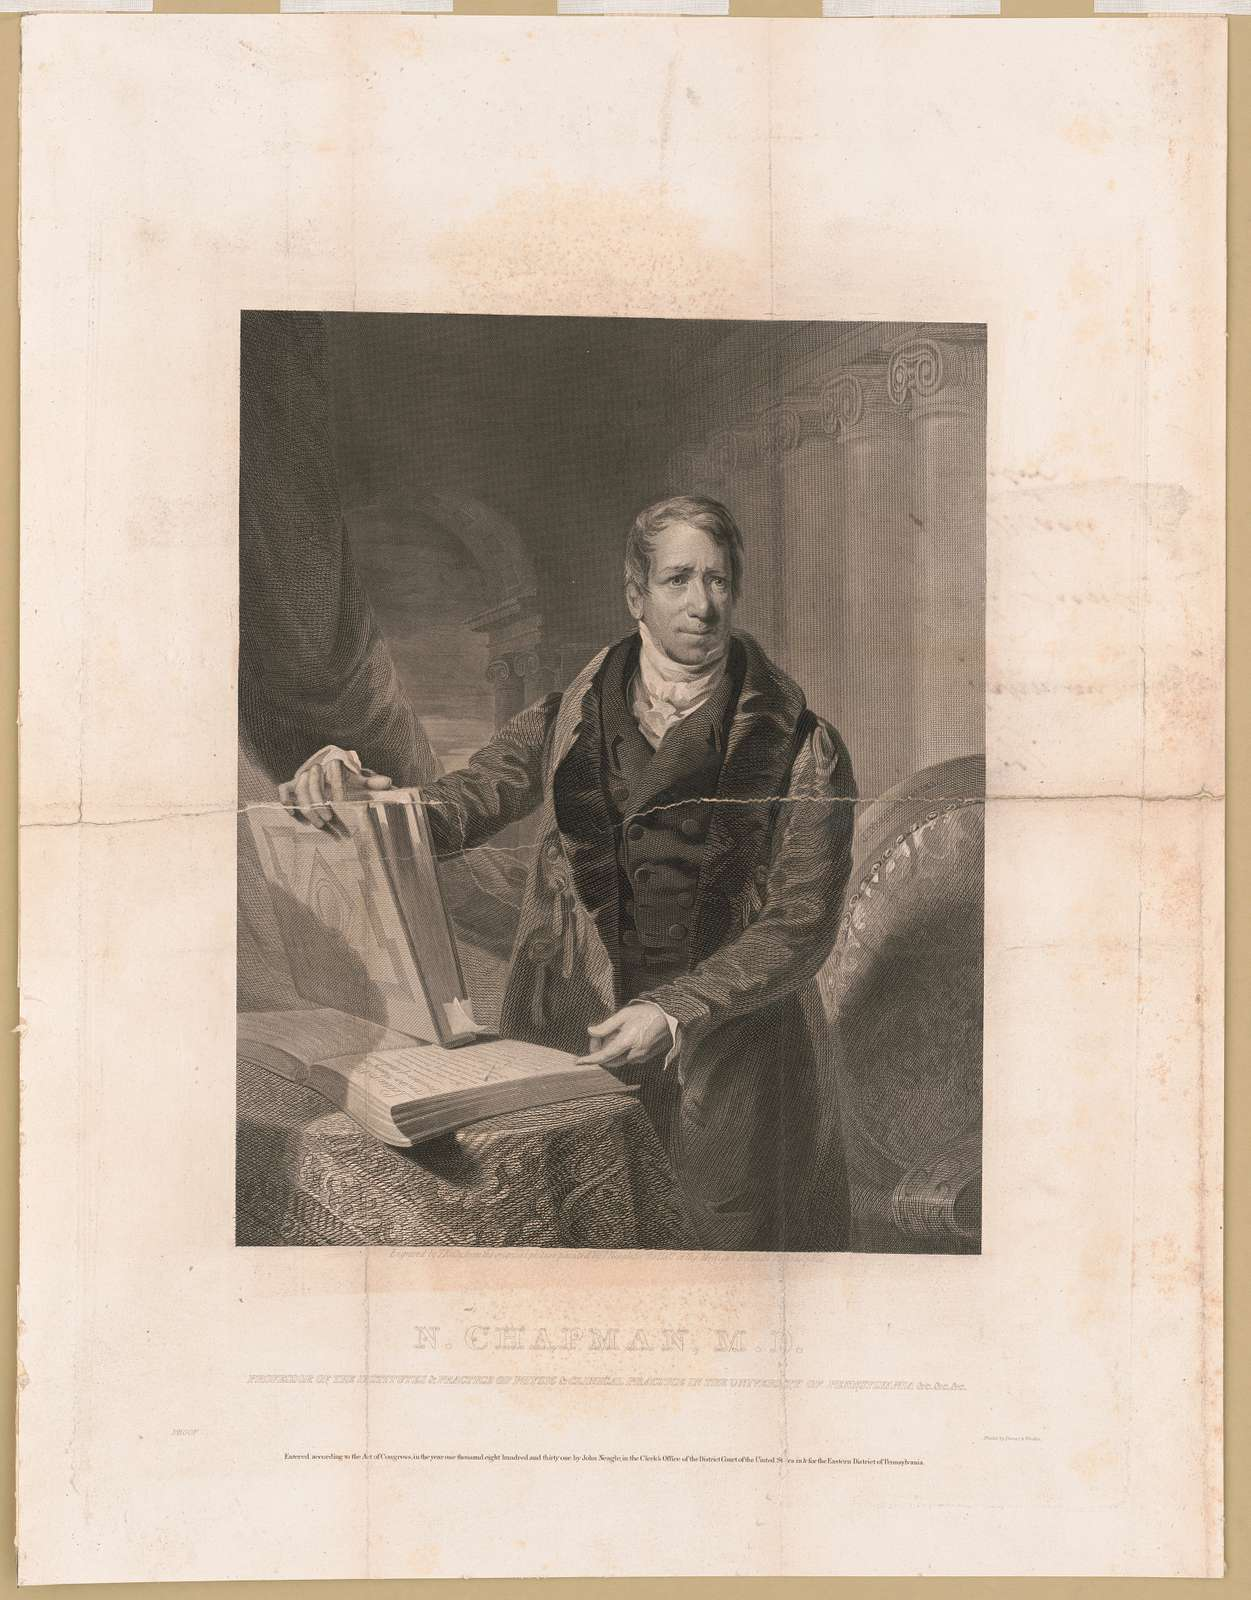 N. Chapman, M.D. J. Neagle pinxt 1830 ; engraved by T. Kelly from the original picture painted by J. Neagle for the Hall of the Medical Institute Philadelphia